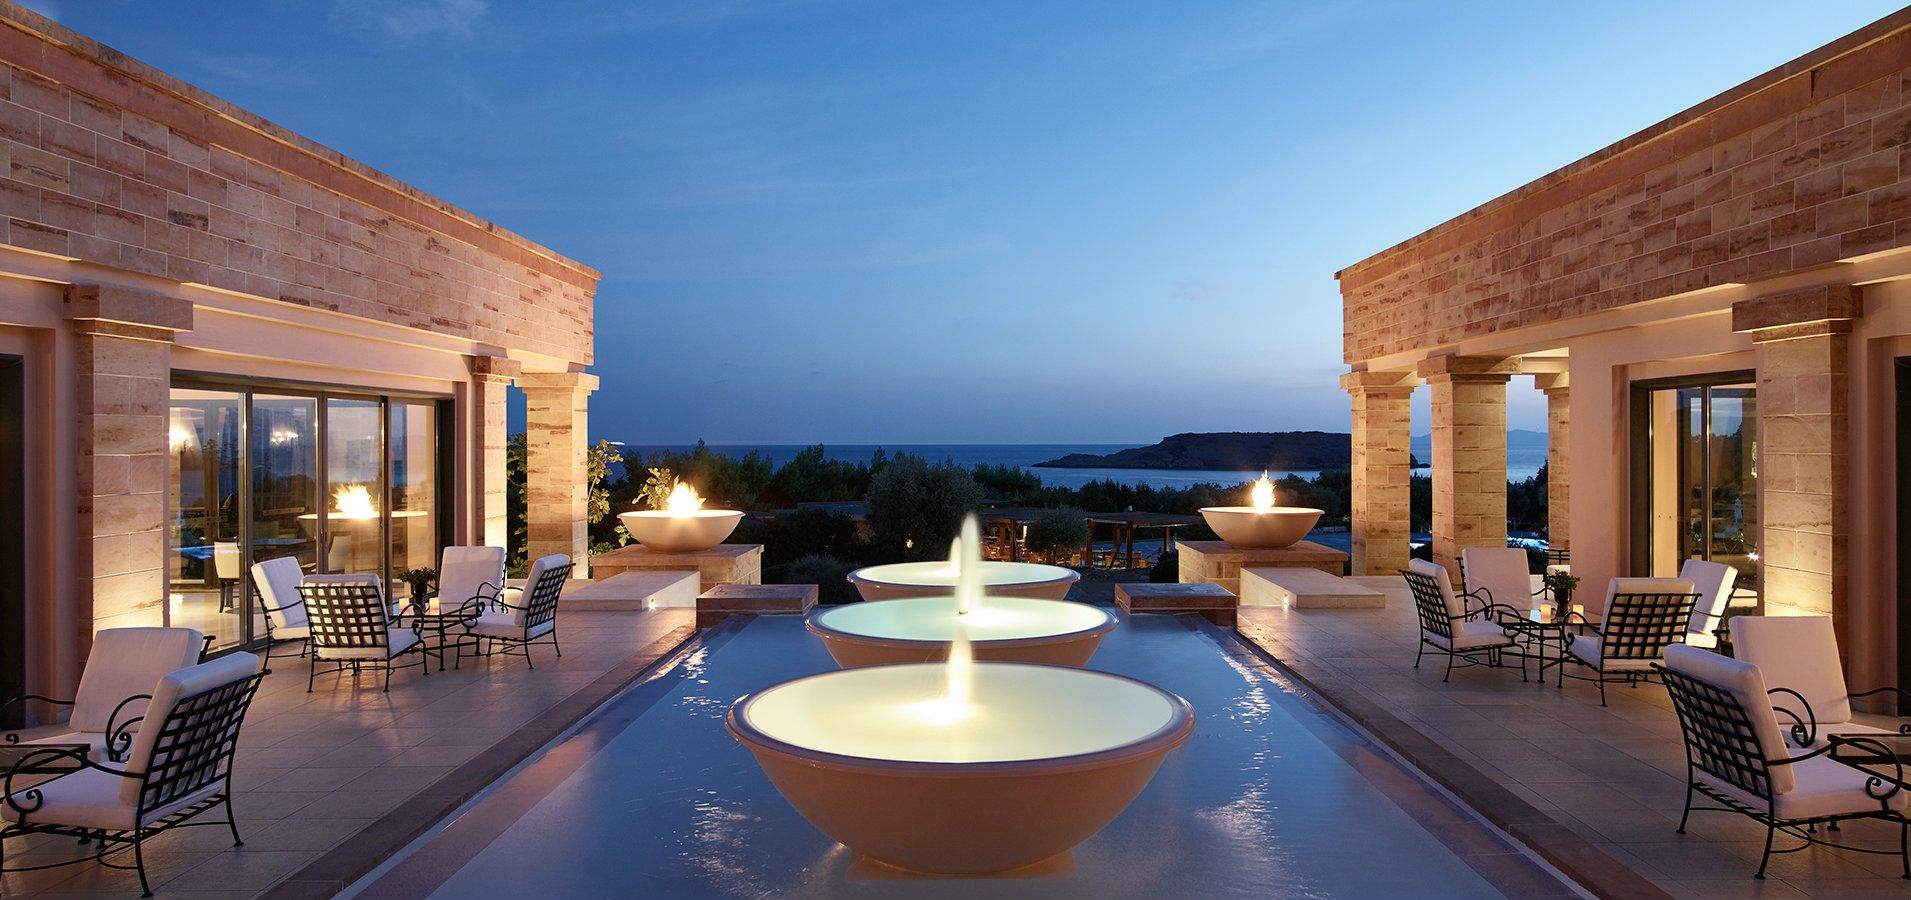 Cape Sounio Luxury Beach Resort In Greece 8149111